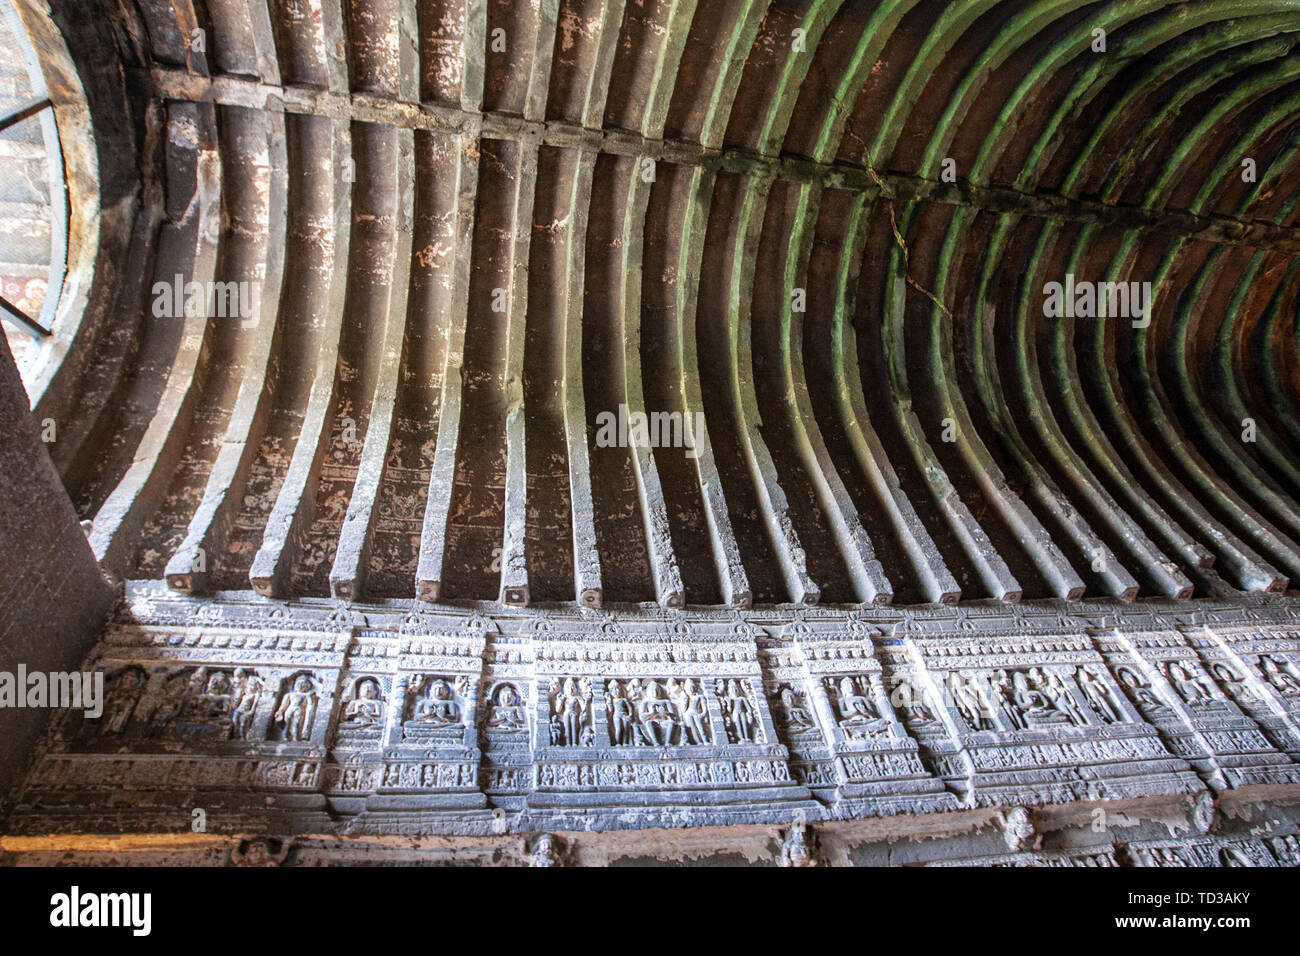 Pillars, brackets and the triforium are extensively carved with Buddhist themes. Cave 26, Ajanta Caves, Aurangabad District, Maharashtra, India Stock Photo